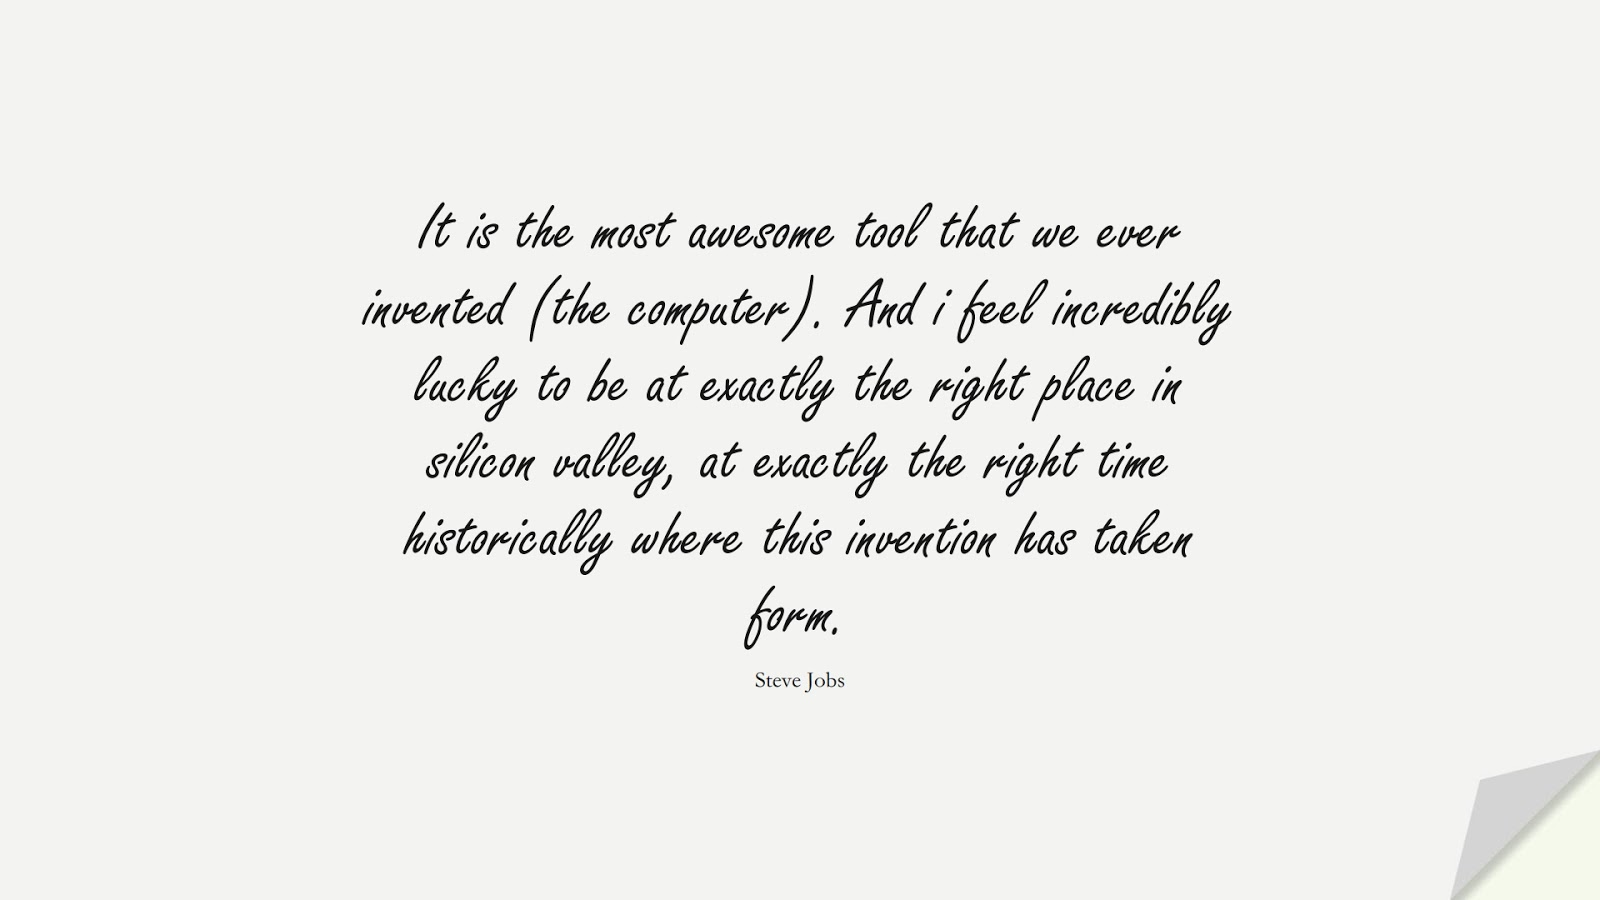 It is the most awesome tool that we ever invented (the computer). And i feel incredibly lucky to be at exactly the right place in silicon valley, at exactly the right time historically where this invention has taken form. (Steve Jobs);  #SteveJobsQuotes